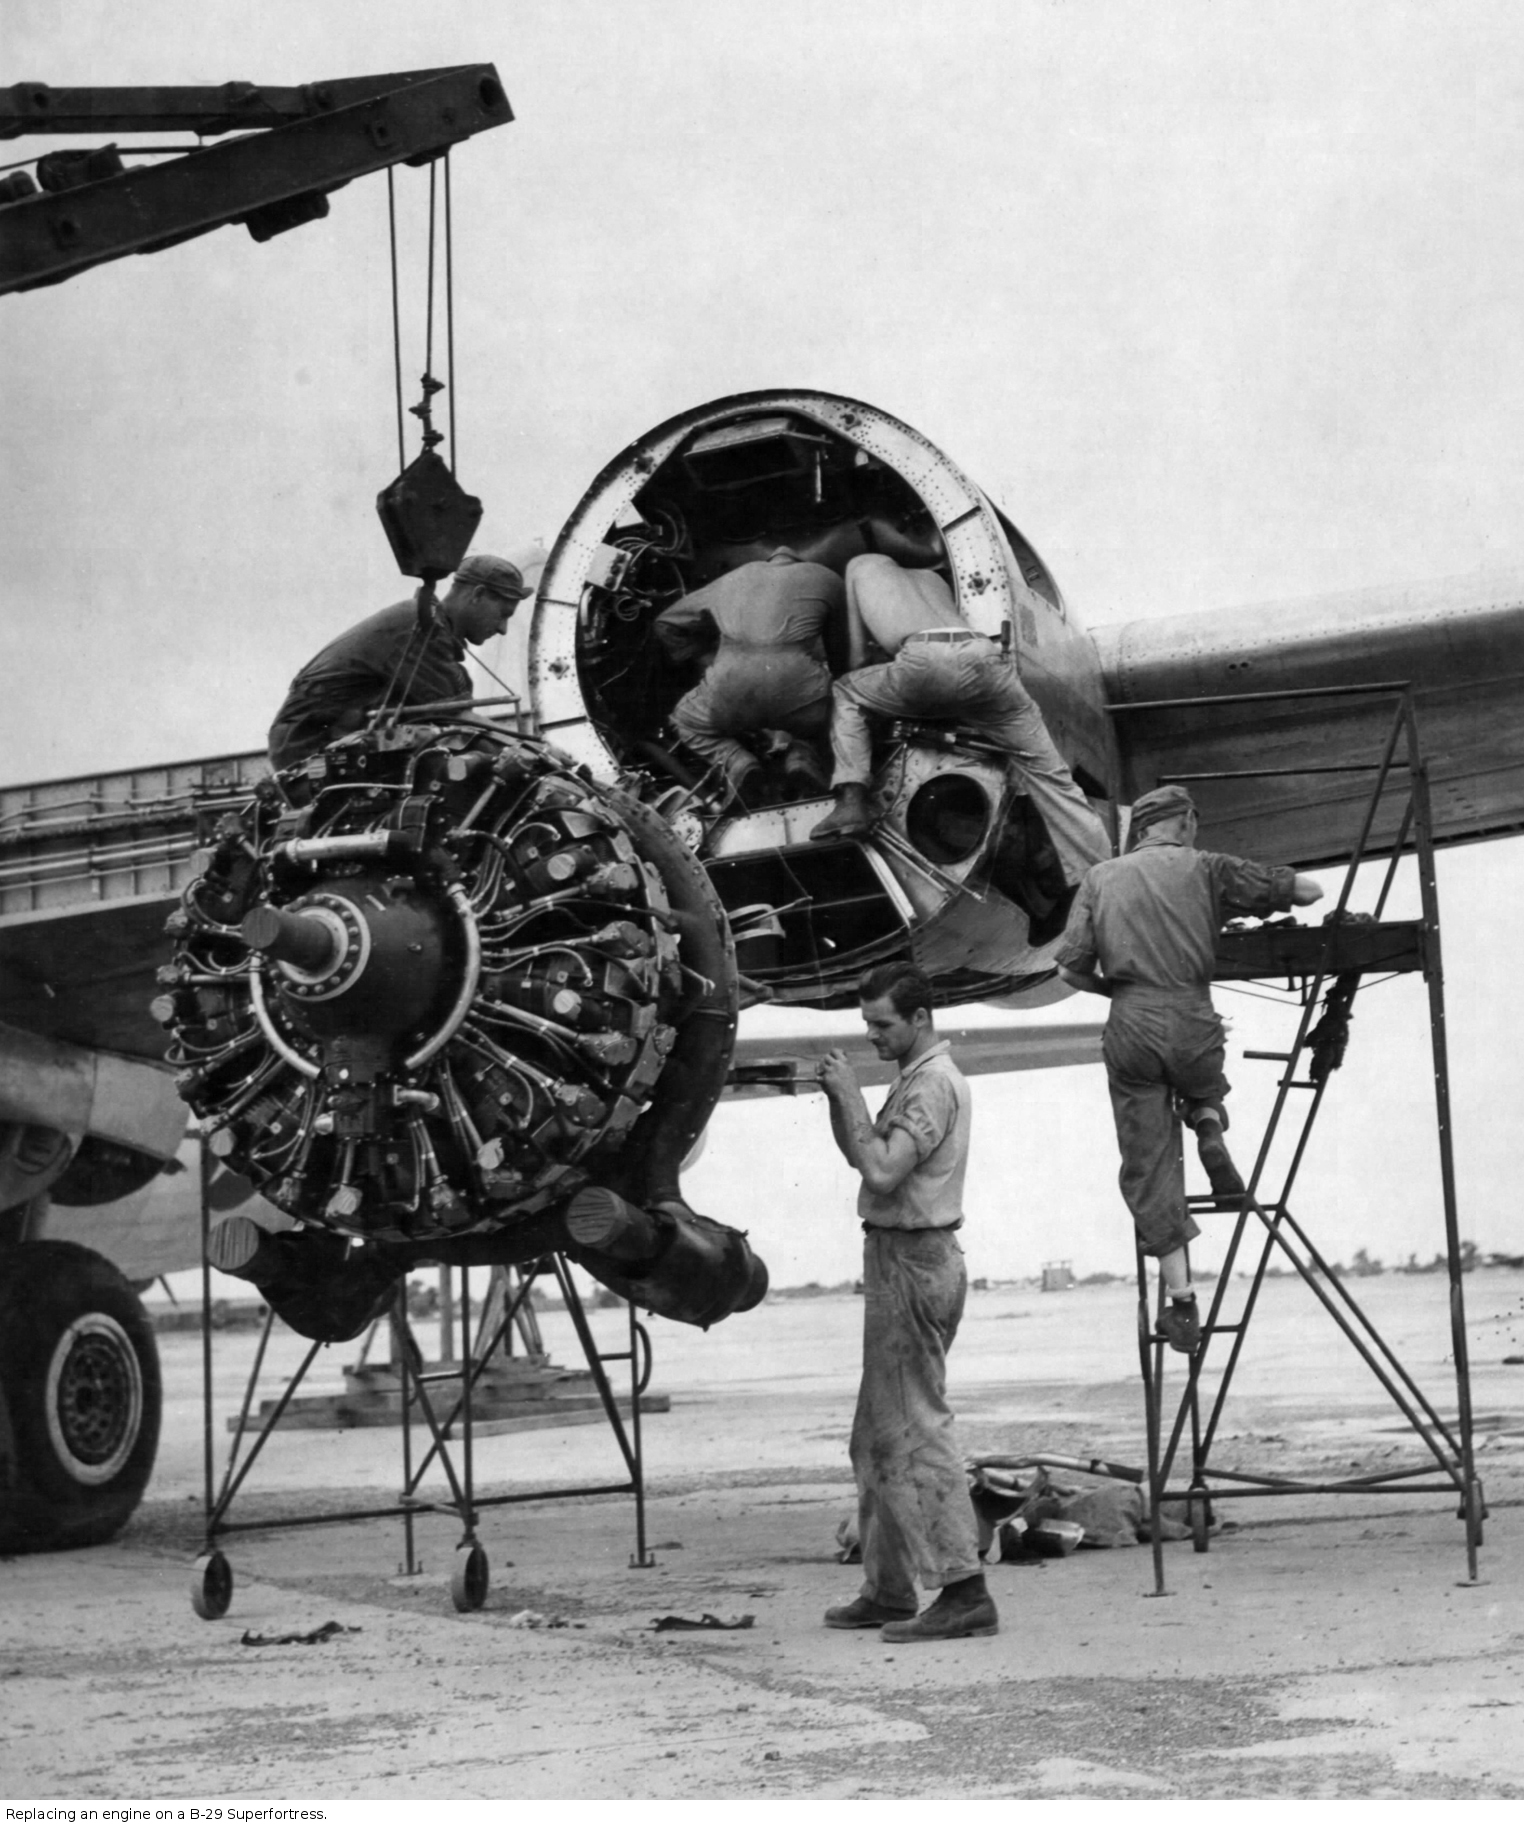 hight resolution of replacing an engine on a b 29